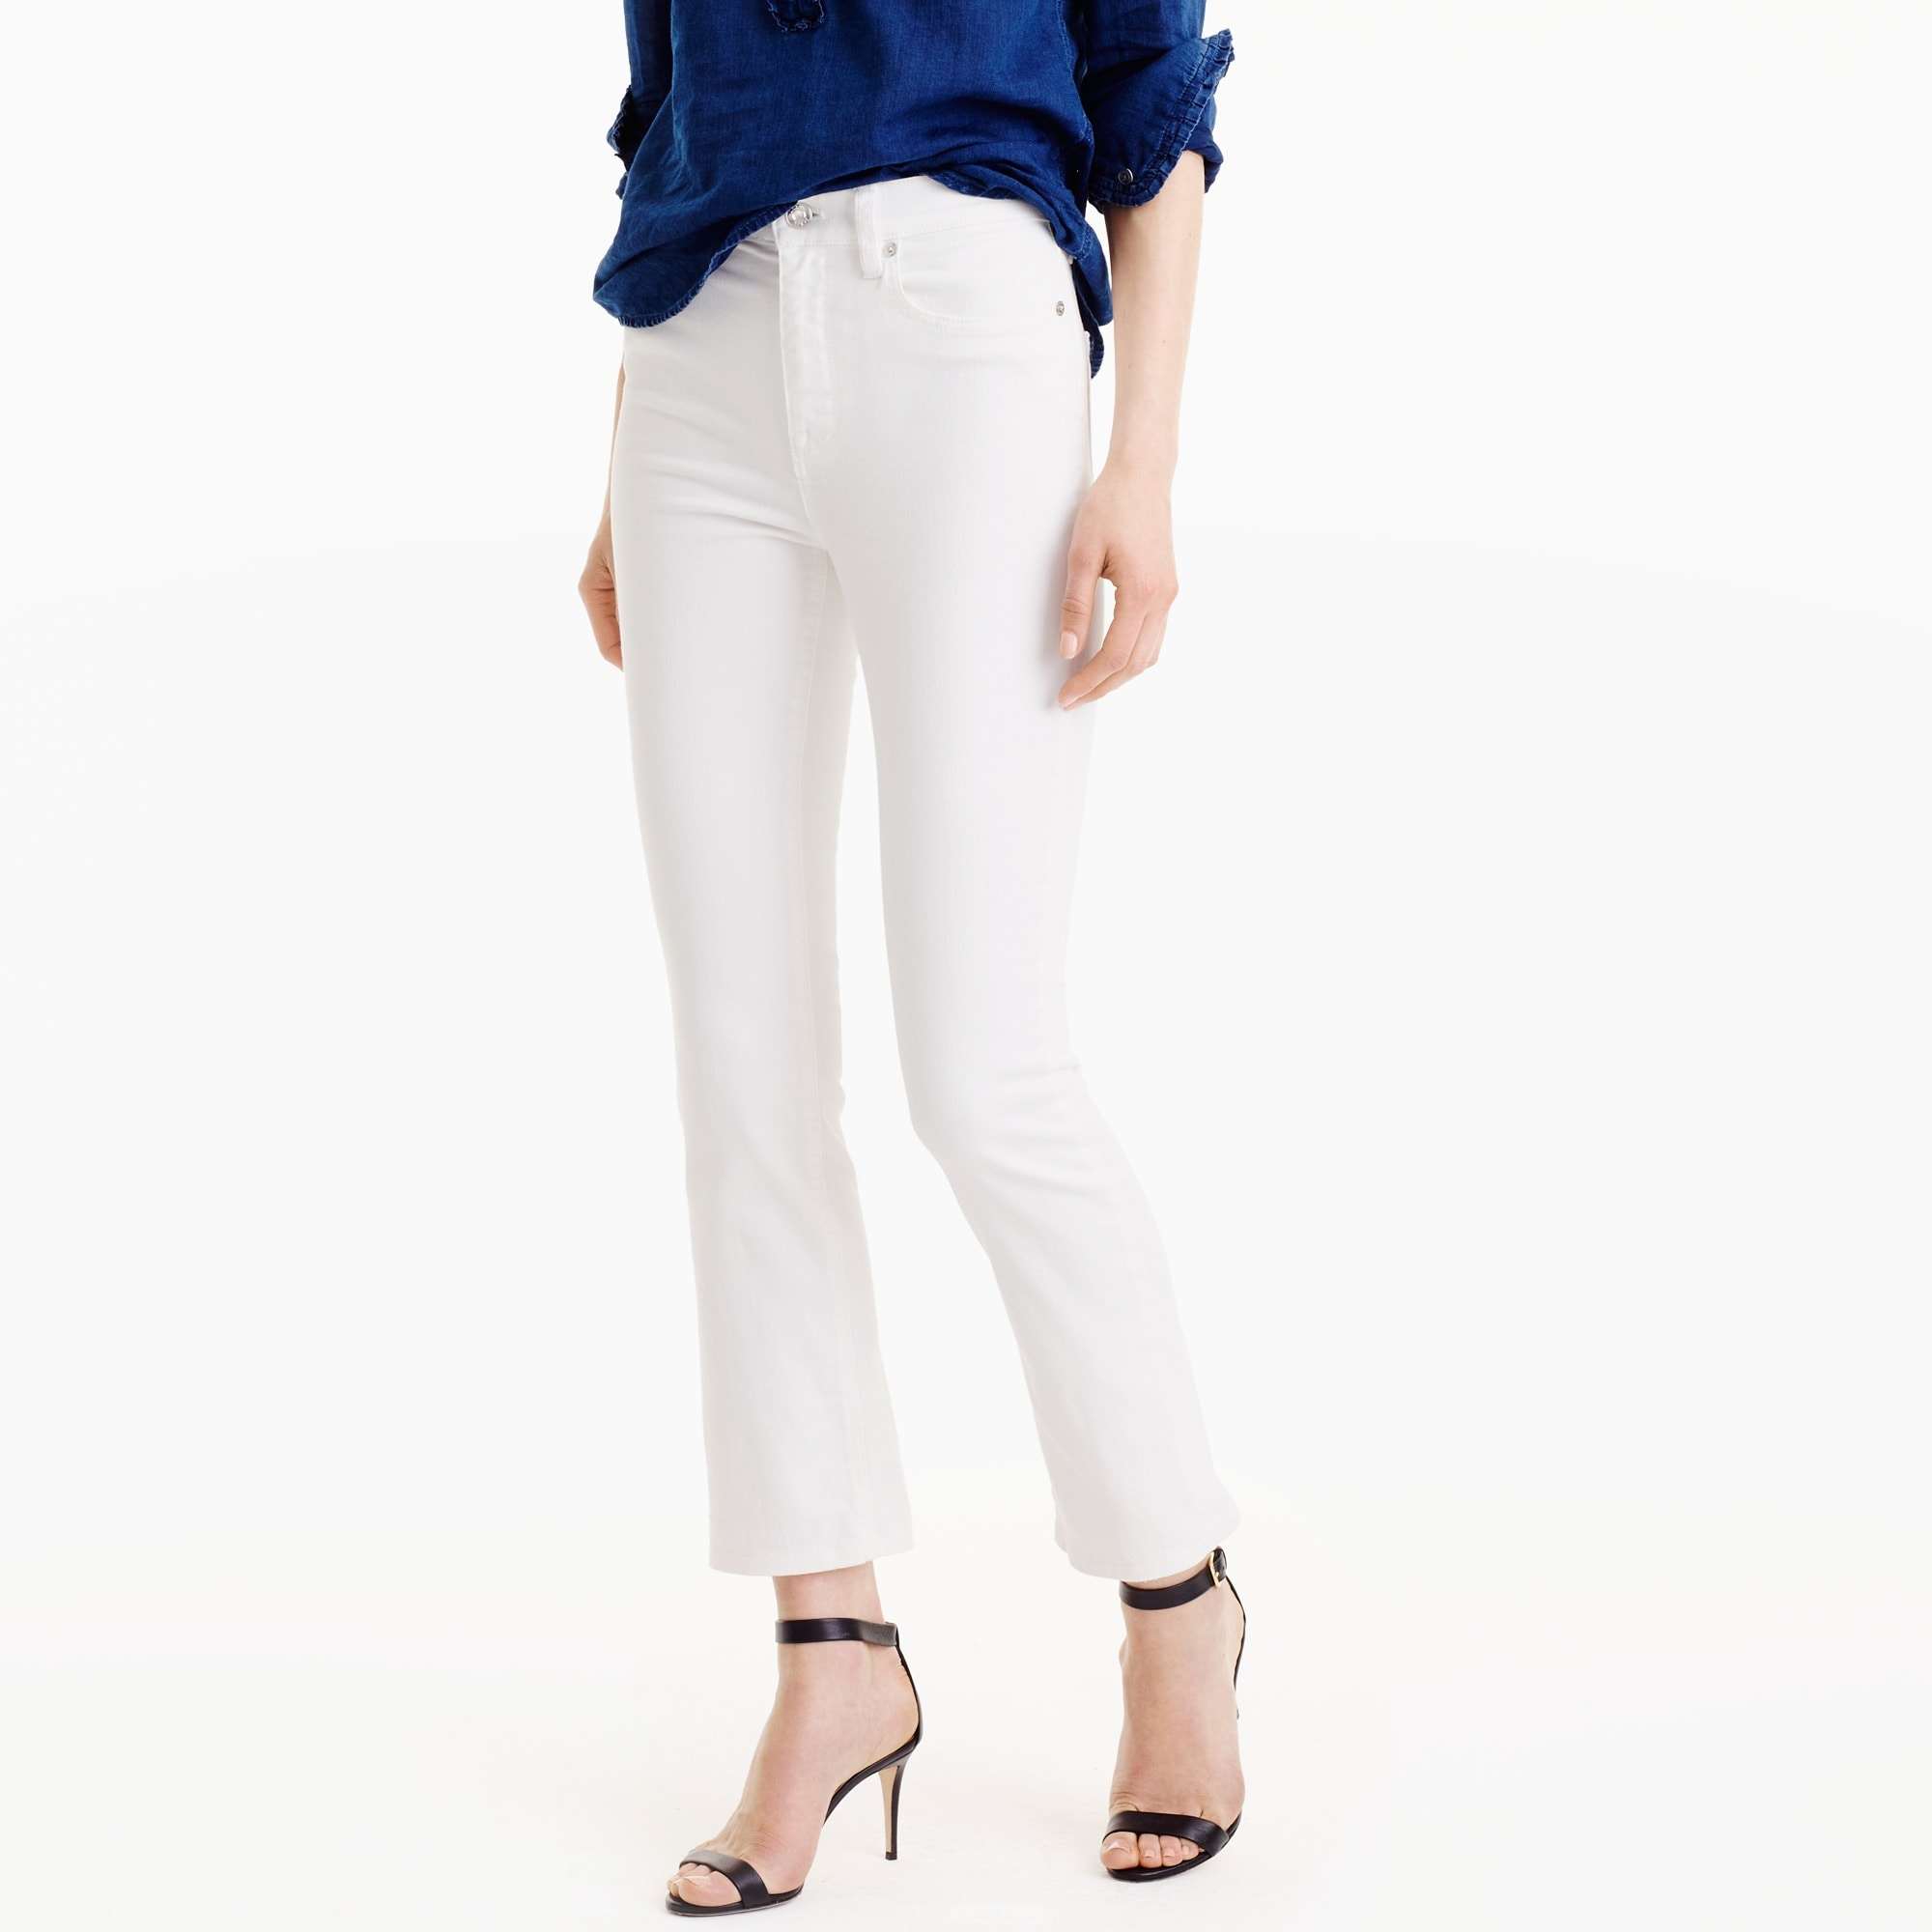 billie demi-boot crop jean in white : women cropped